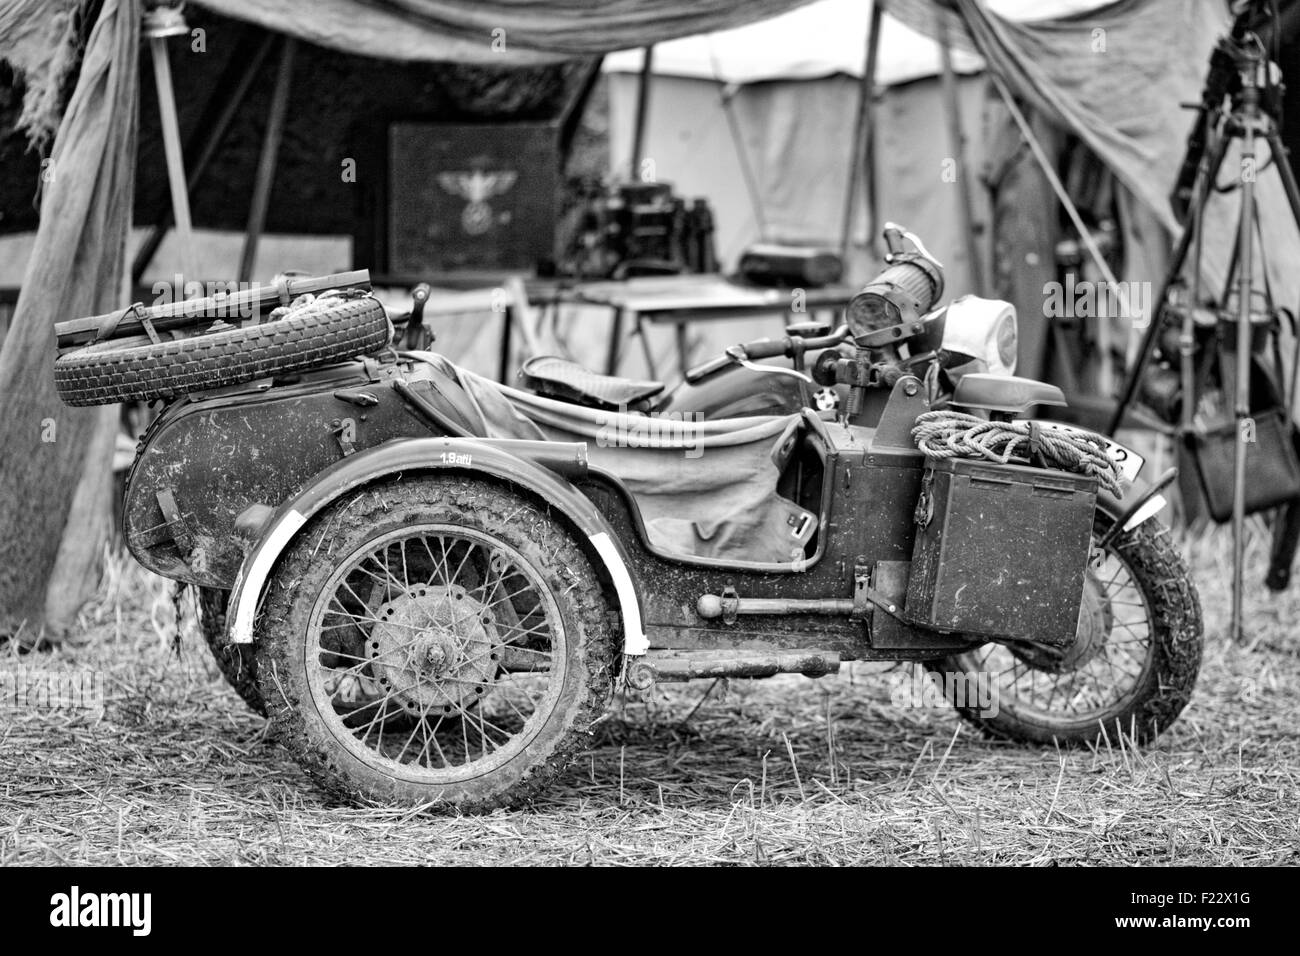 German BMW Motorcycle parked in a German encampment Black and white - Stock Image